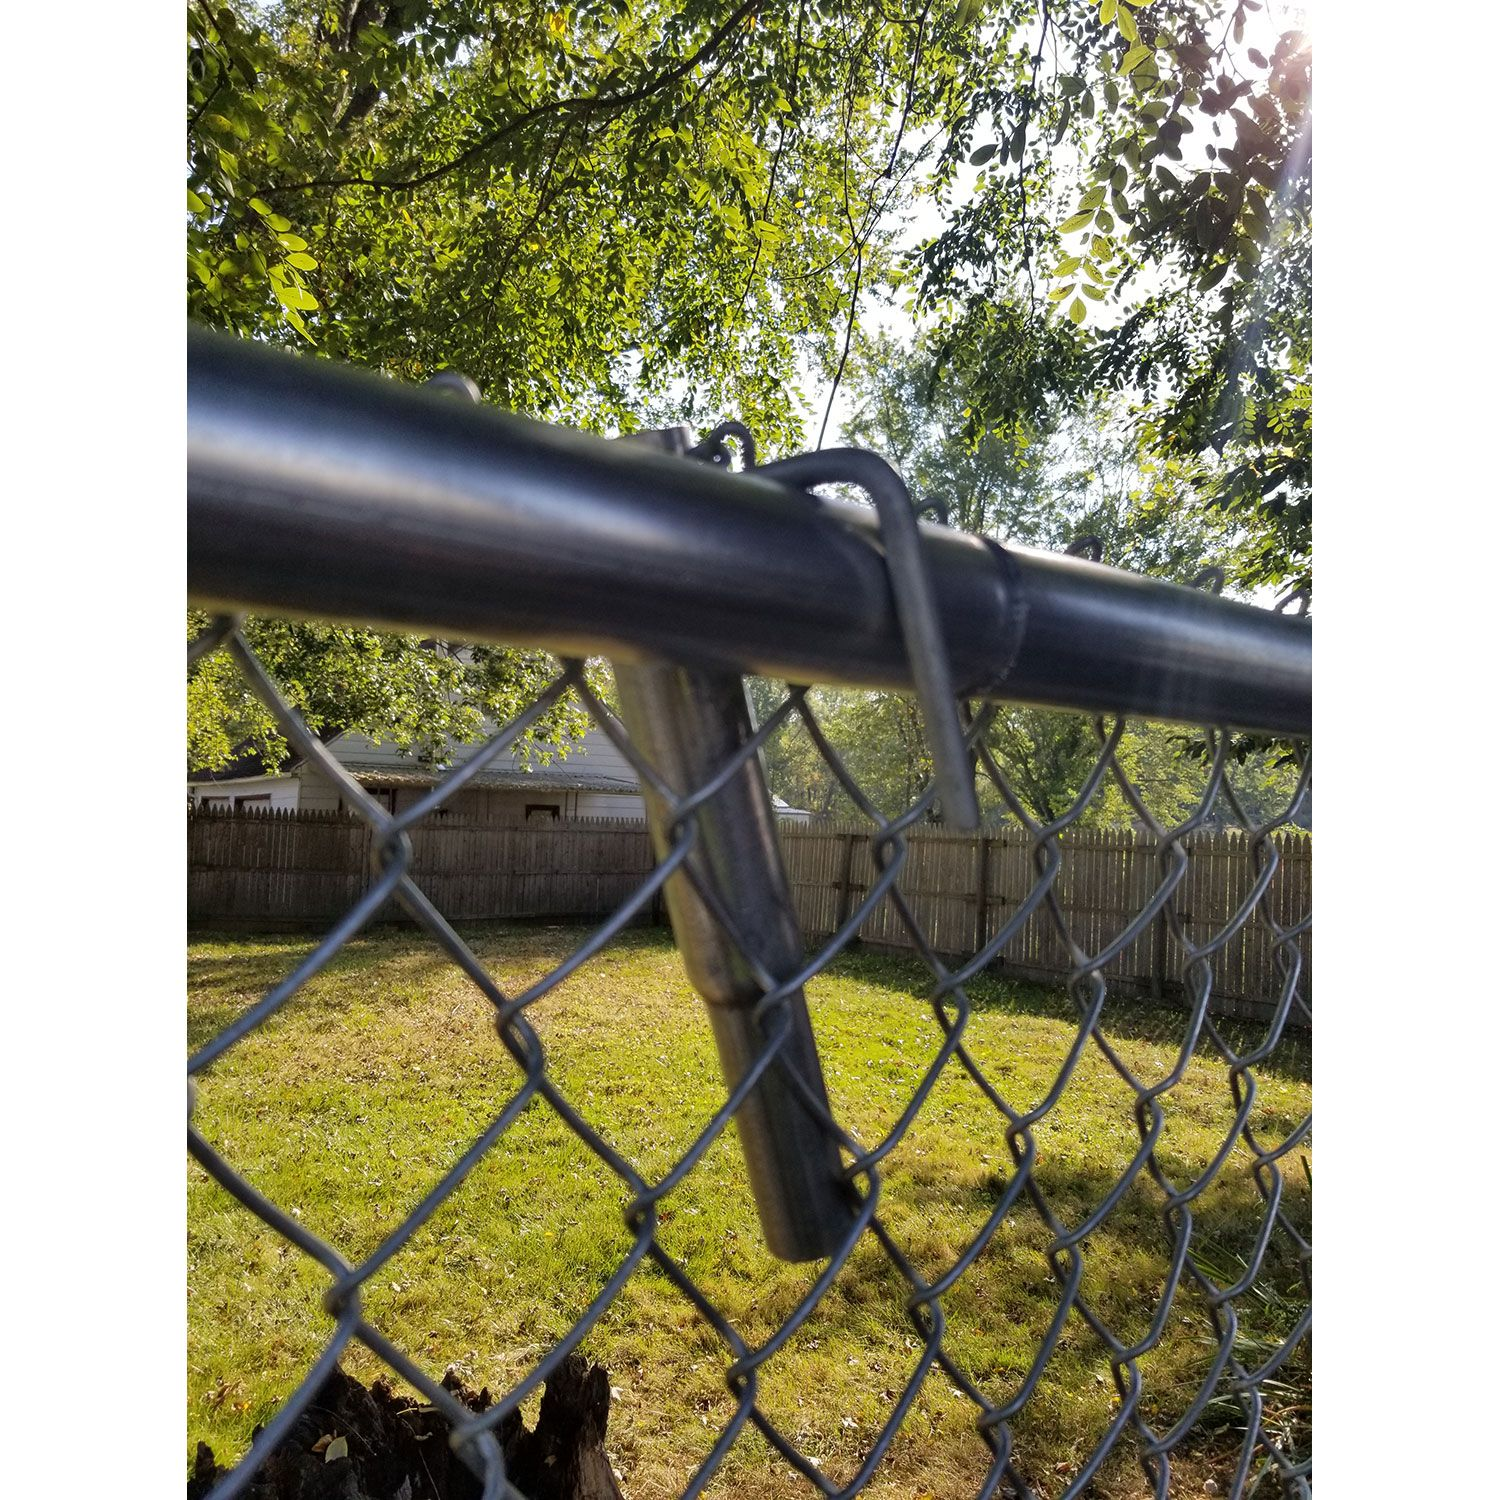 The Grunt Chain Link Fence Lift Pair Hoover Fence Co